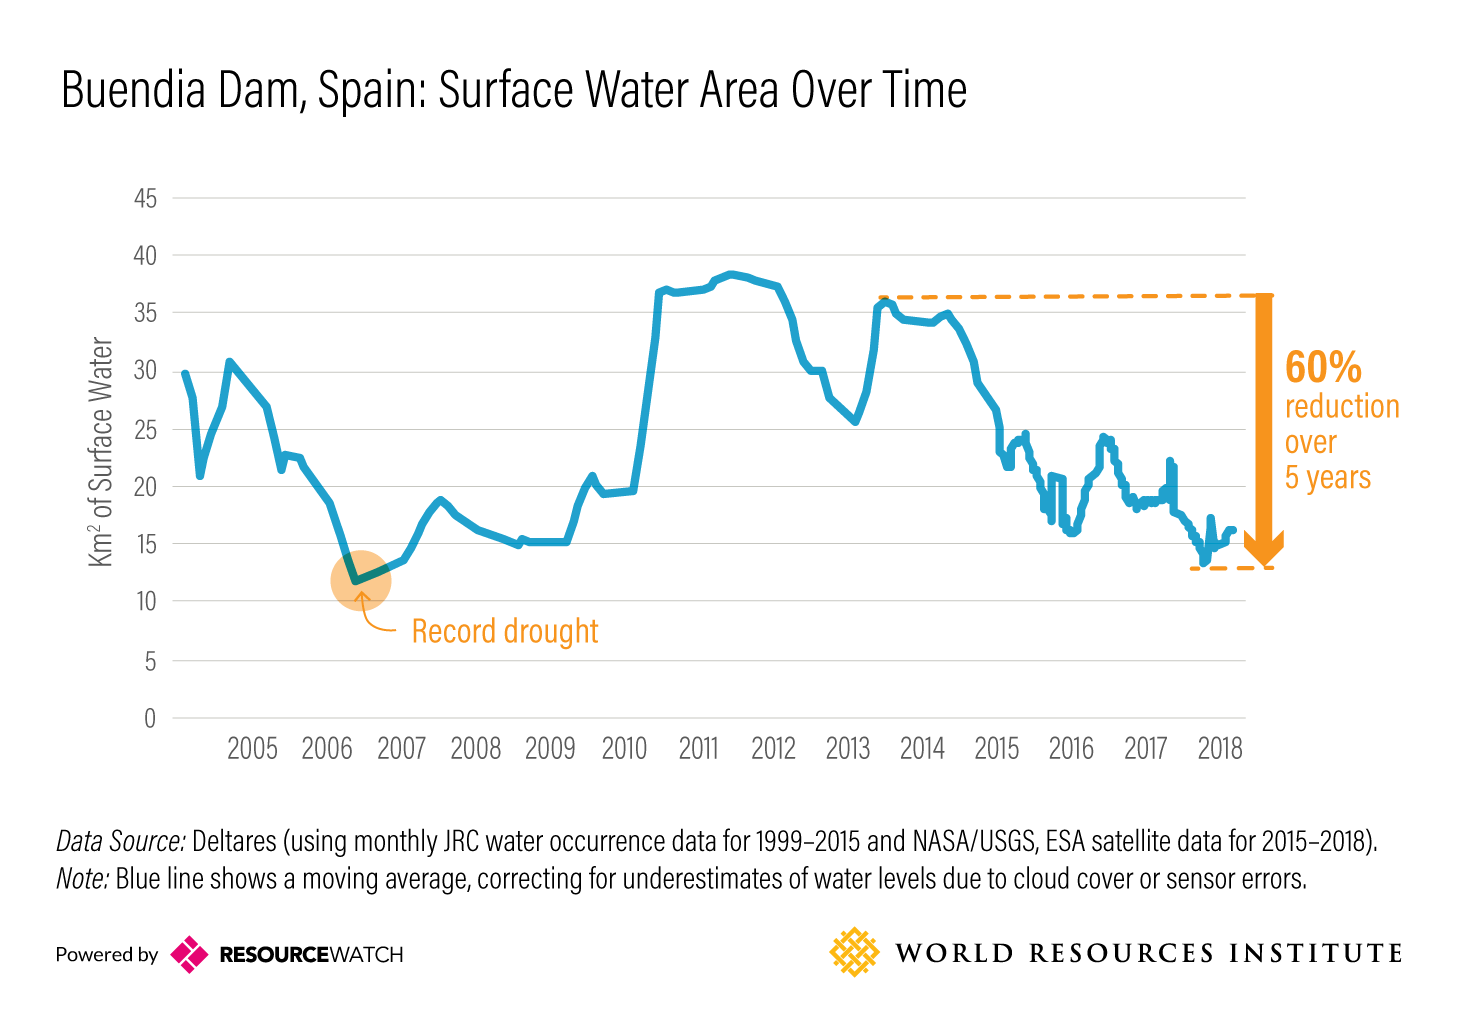 Buendia Dam, Spain: Surface Water Area Over Time